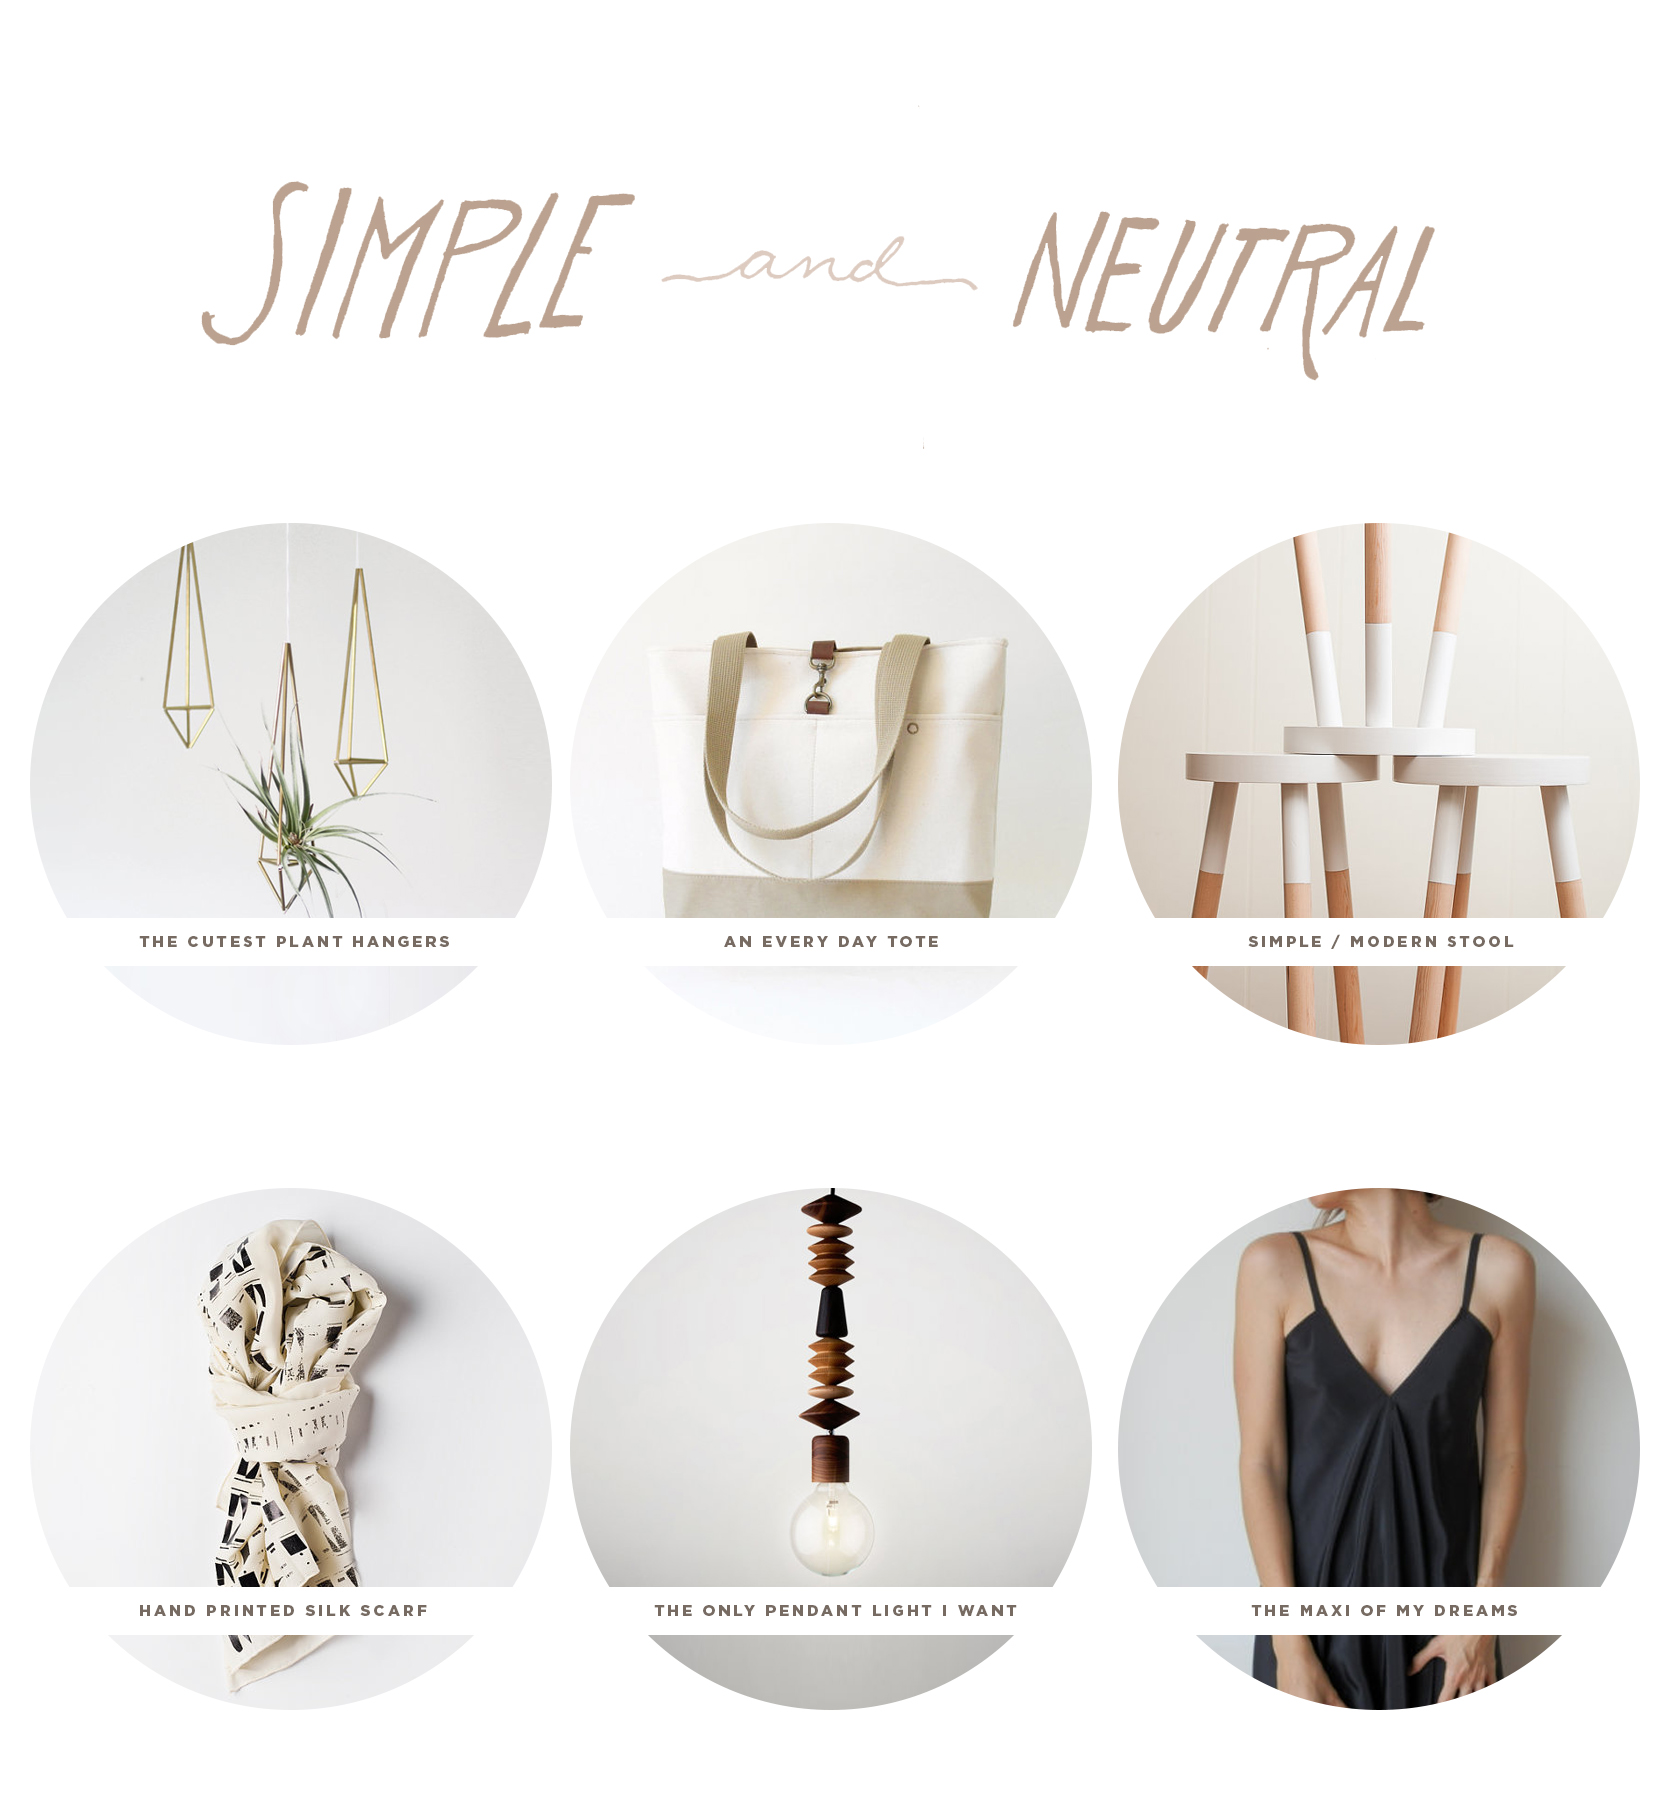 Simple and Neutral  |  The Fresh Exchange